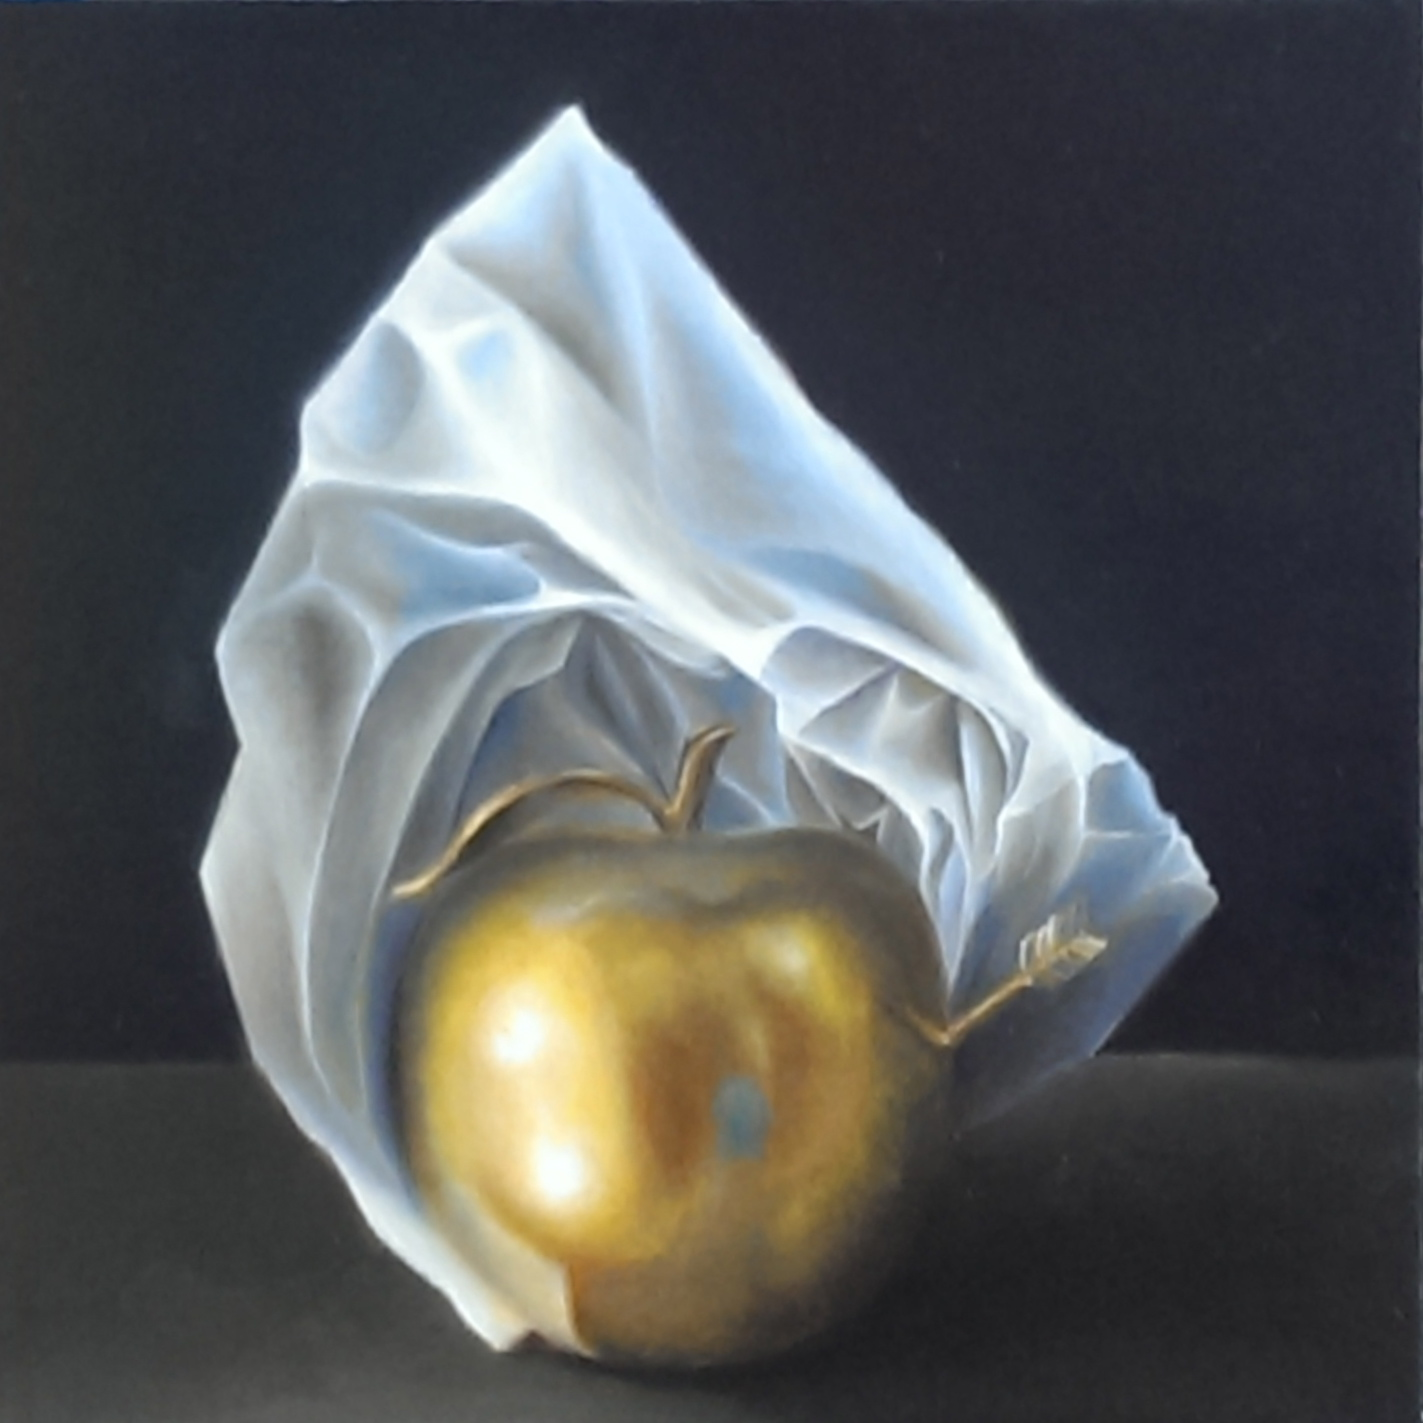 Golden Apple with Paper